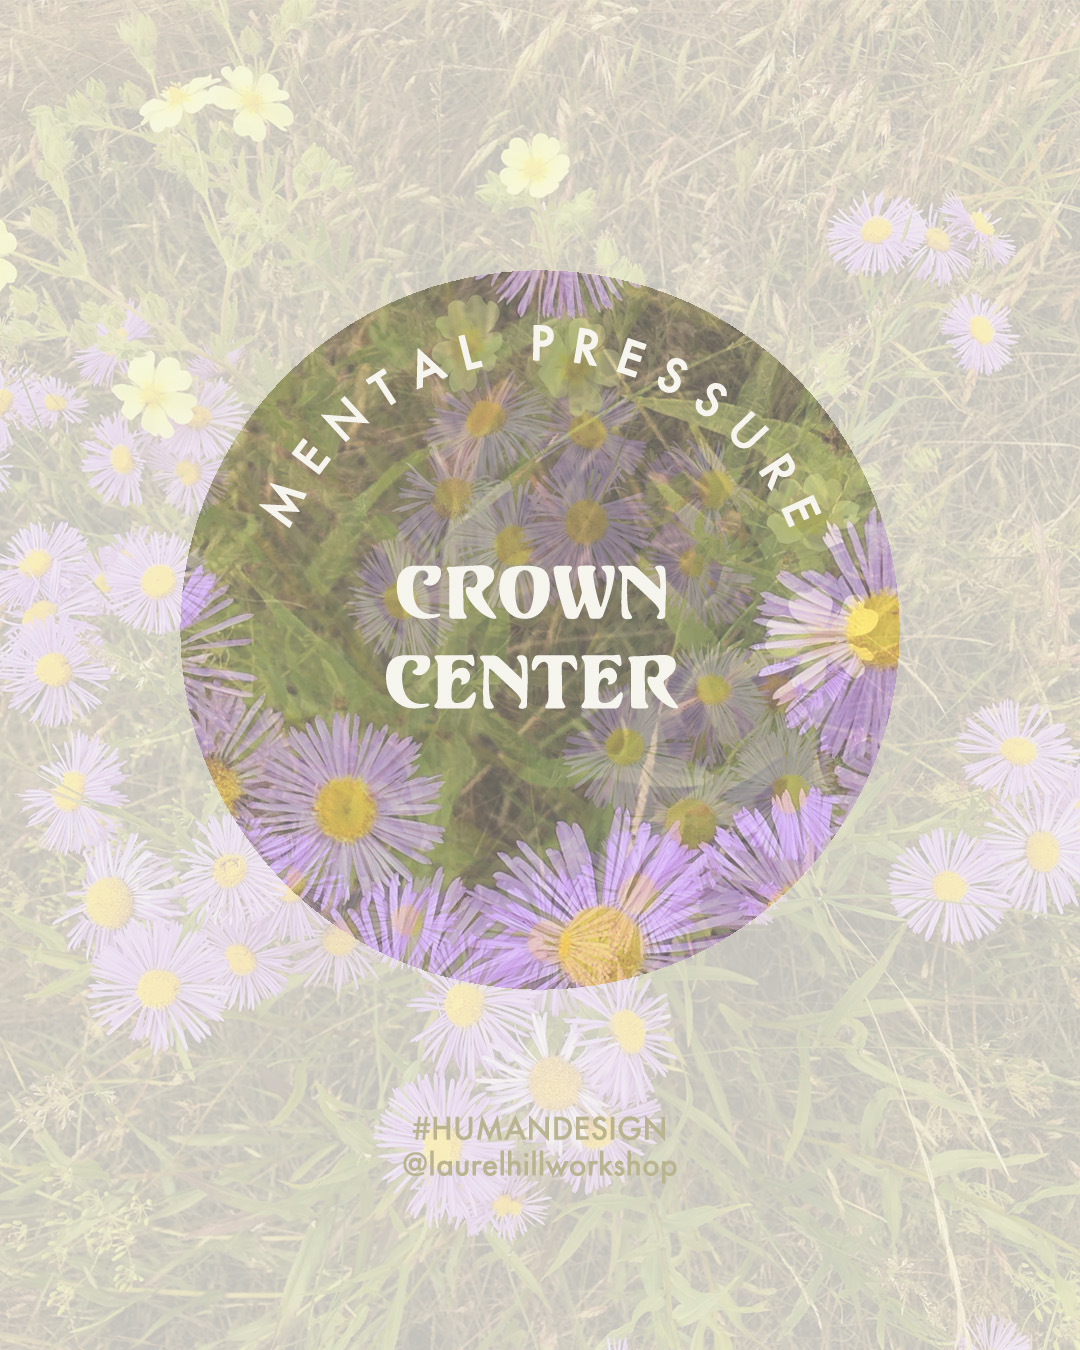 The Crown Center . Laurel Hill Human Design  Pressure from our Crown fuels amazing insights and discoveries and the joy of taking in the world around is, but it can also lead to anxiety in the Ajna/Mind, so the trick here is to acknowledge the flow of mental pressure without letting it take the reins. Anxiety, overthinking, and fretting about the past and future are valuable signposts that we can realign our energy, taking a step back and asking ourselves if we're actually thinking about problems that matter for us, or are we grasping at *anything* to relieve the pressure of finding *something* to focus our attention on.